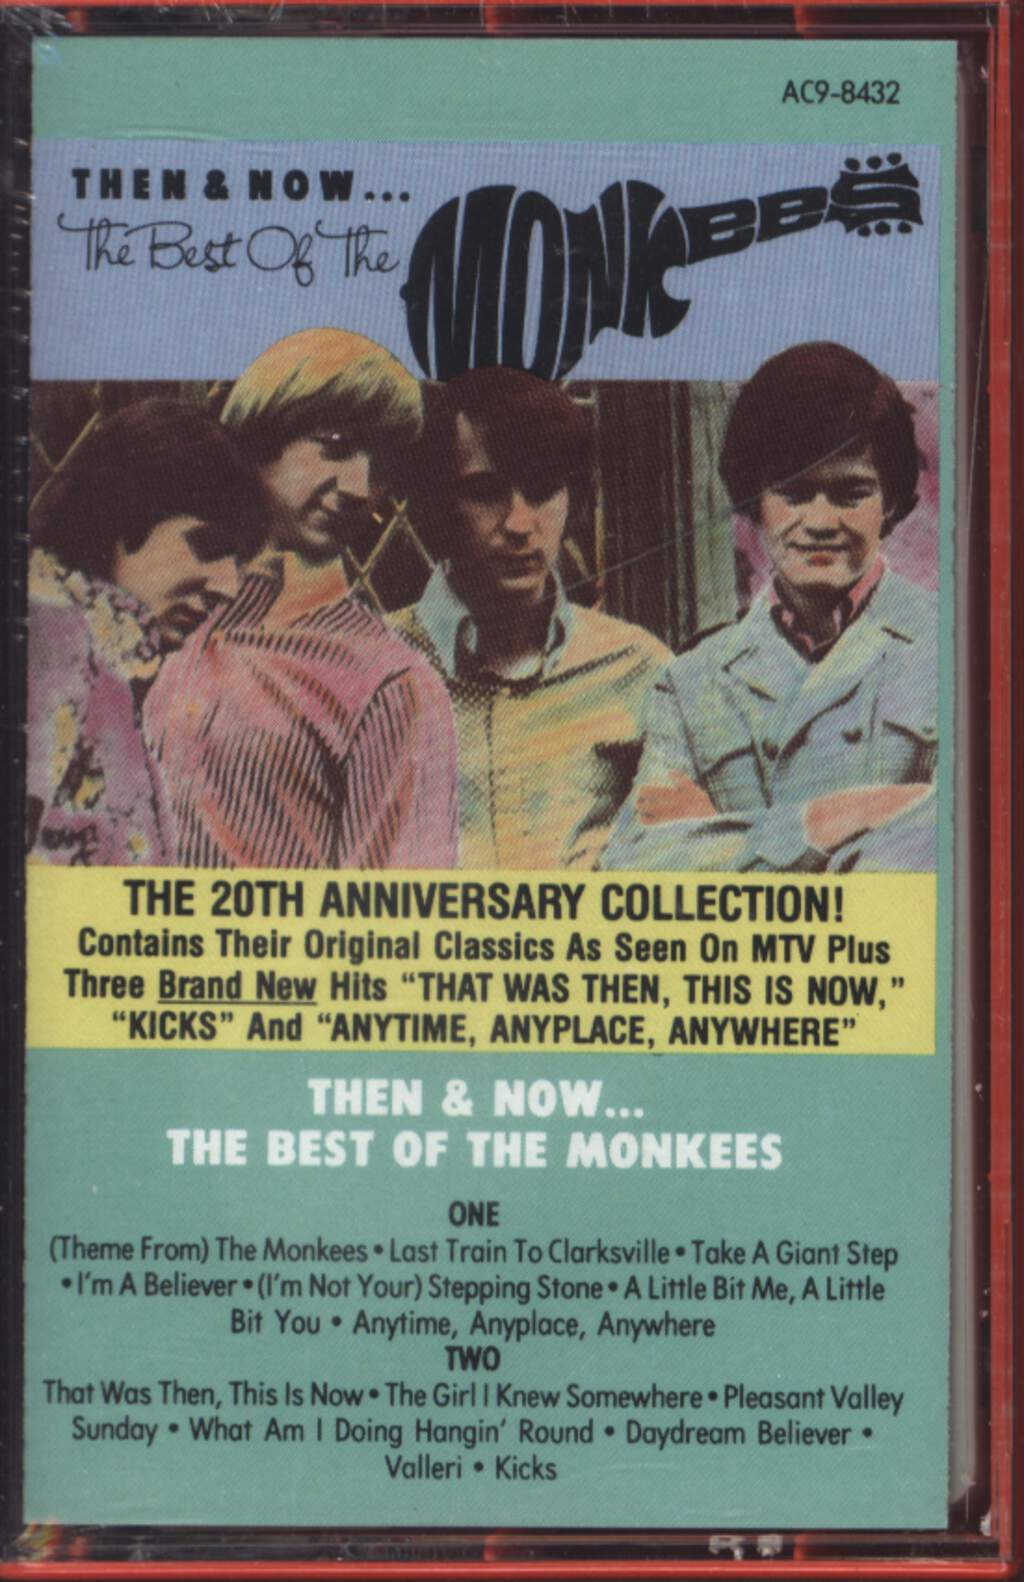 The Monkees: Then & Now... The Best Of The Monkees, Compact Cassette